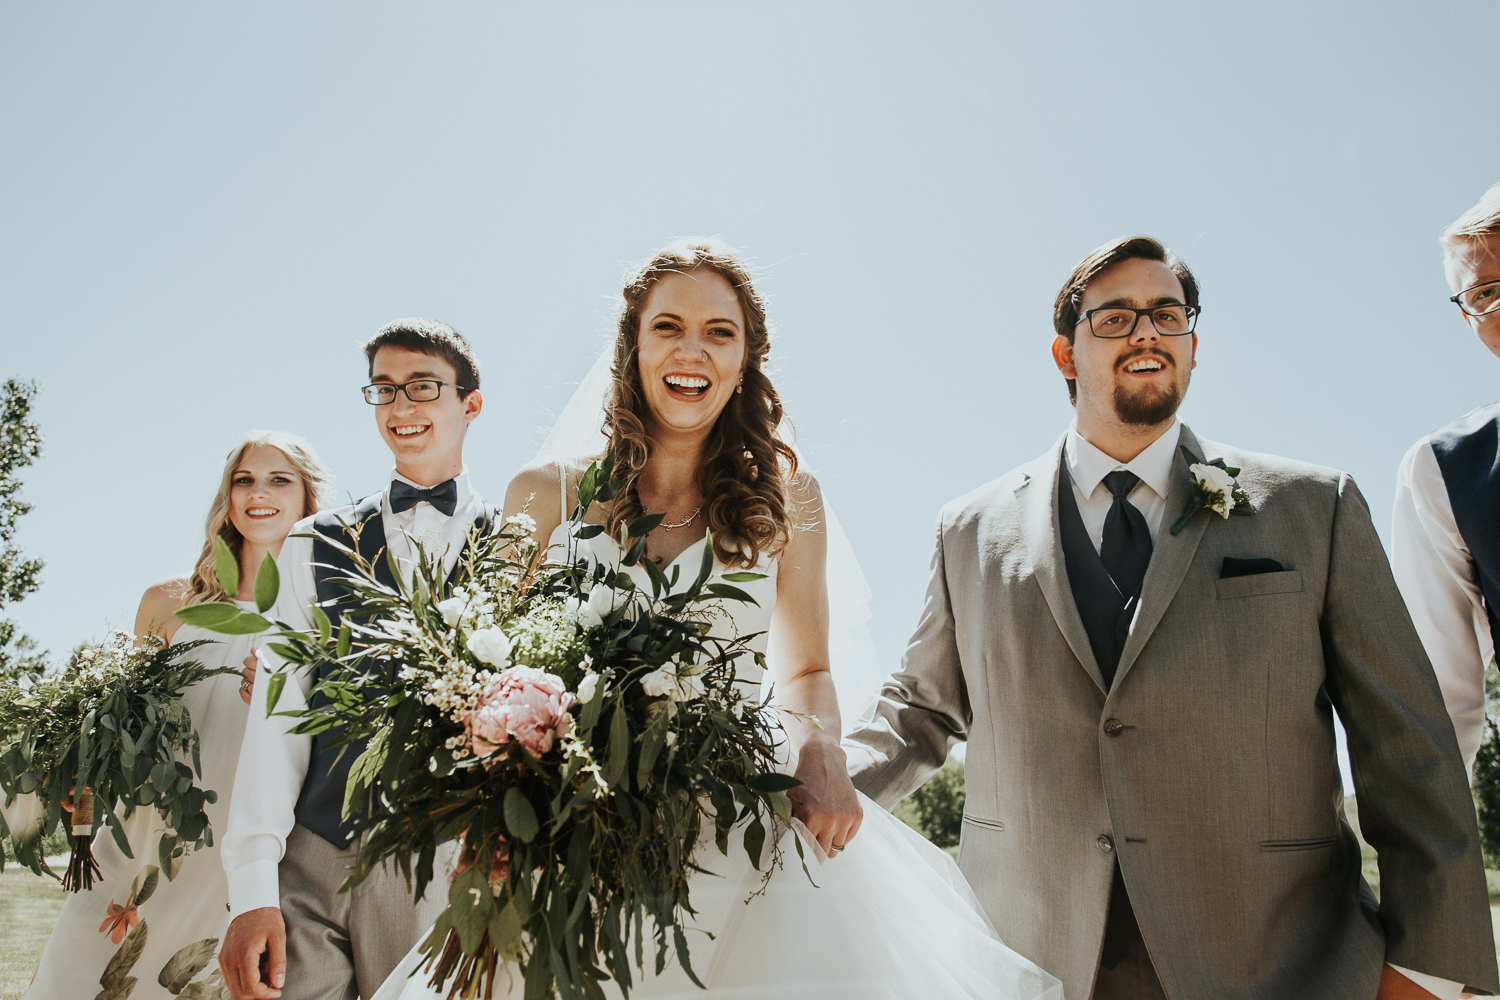 lethbridge-wedding-photographer-love-and-be-loved-photography-dan-tynnea-picture-image-photo-76.jpg